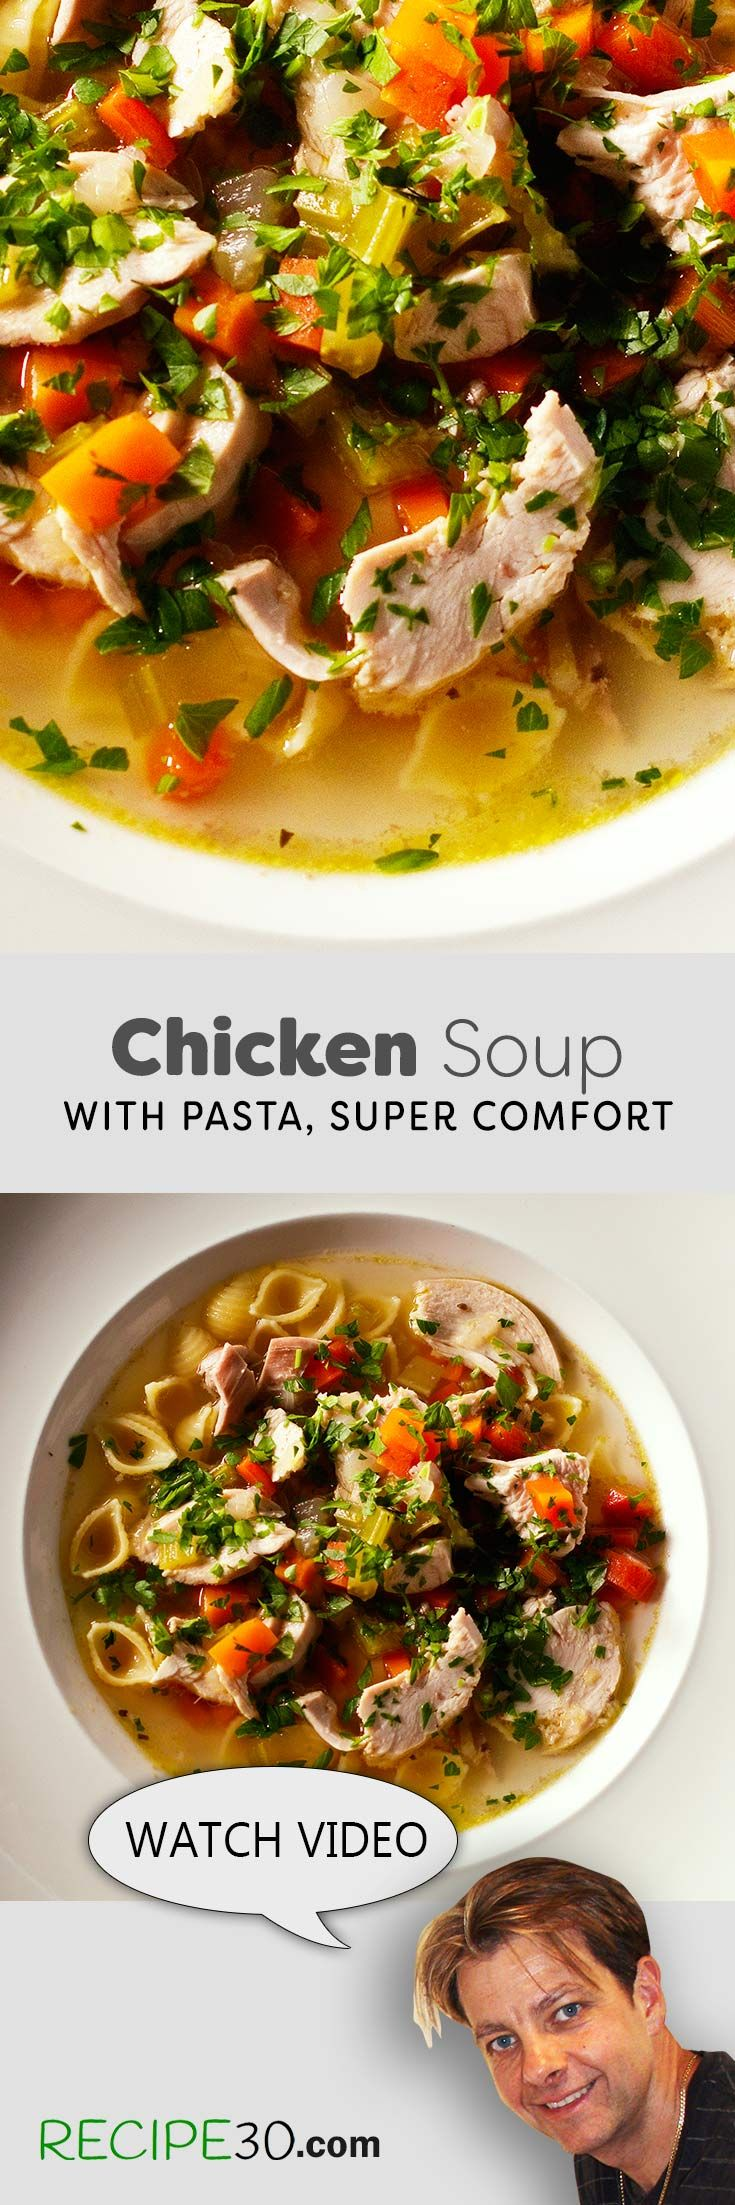 Chicken Noodle Soup The best comfort food, simple to make